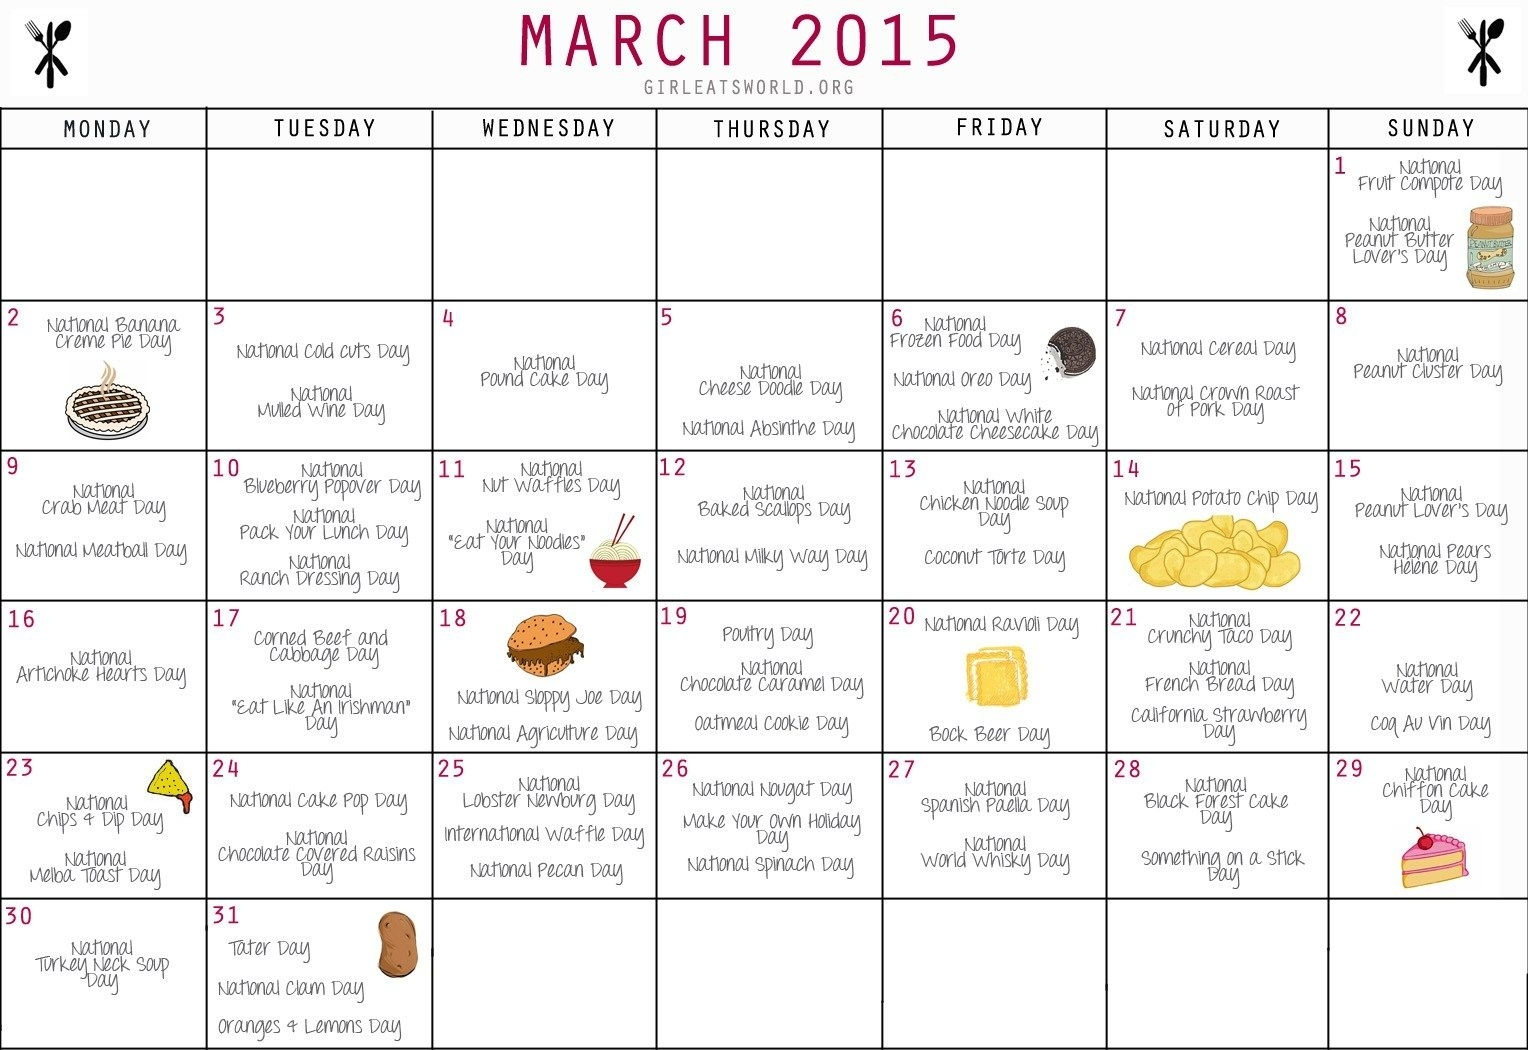 March Calendar | Every Day Is A Day To Celebrate Something in Calender With National Food Days